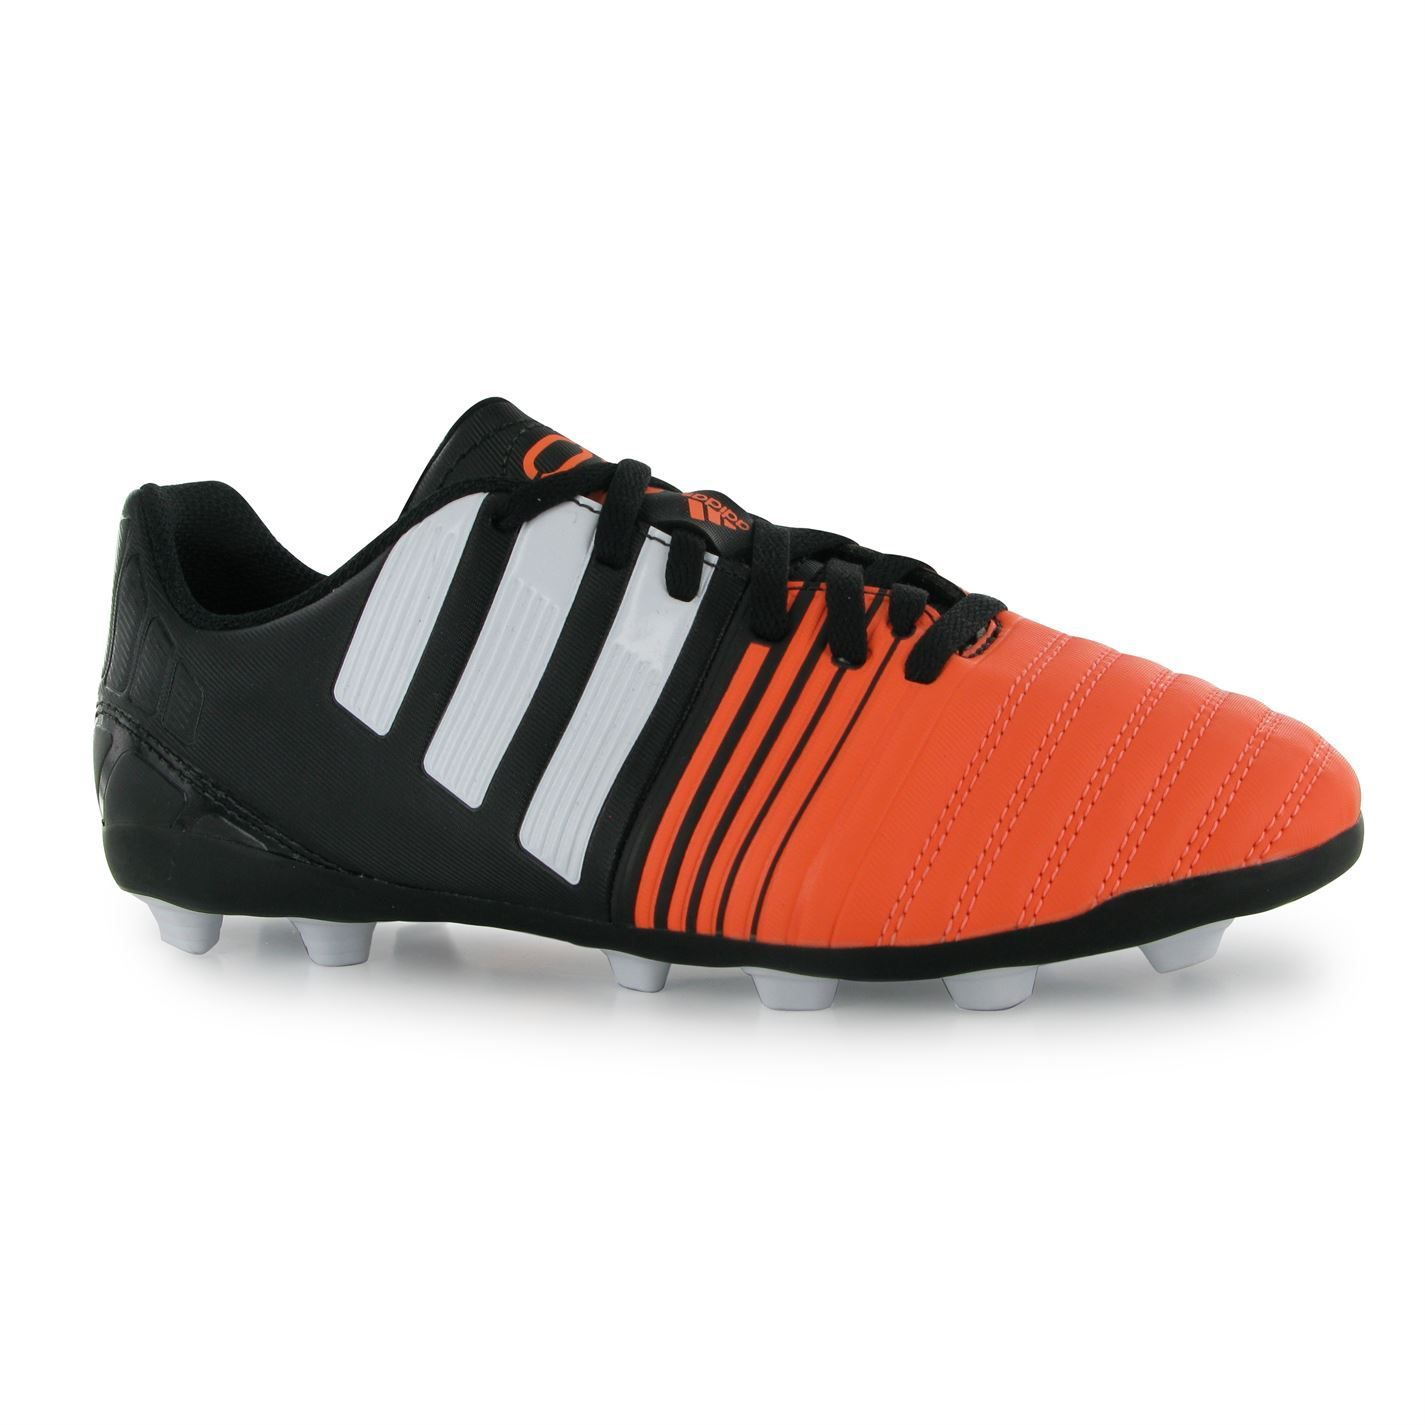 adidas | adidas Nitrocharge 4.0 FG Childrens Football Boots | Kids adidas Nitrocharge Football Boots